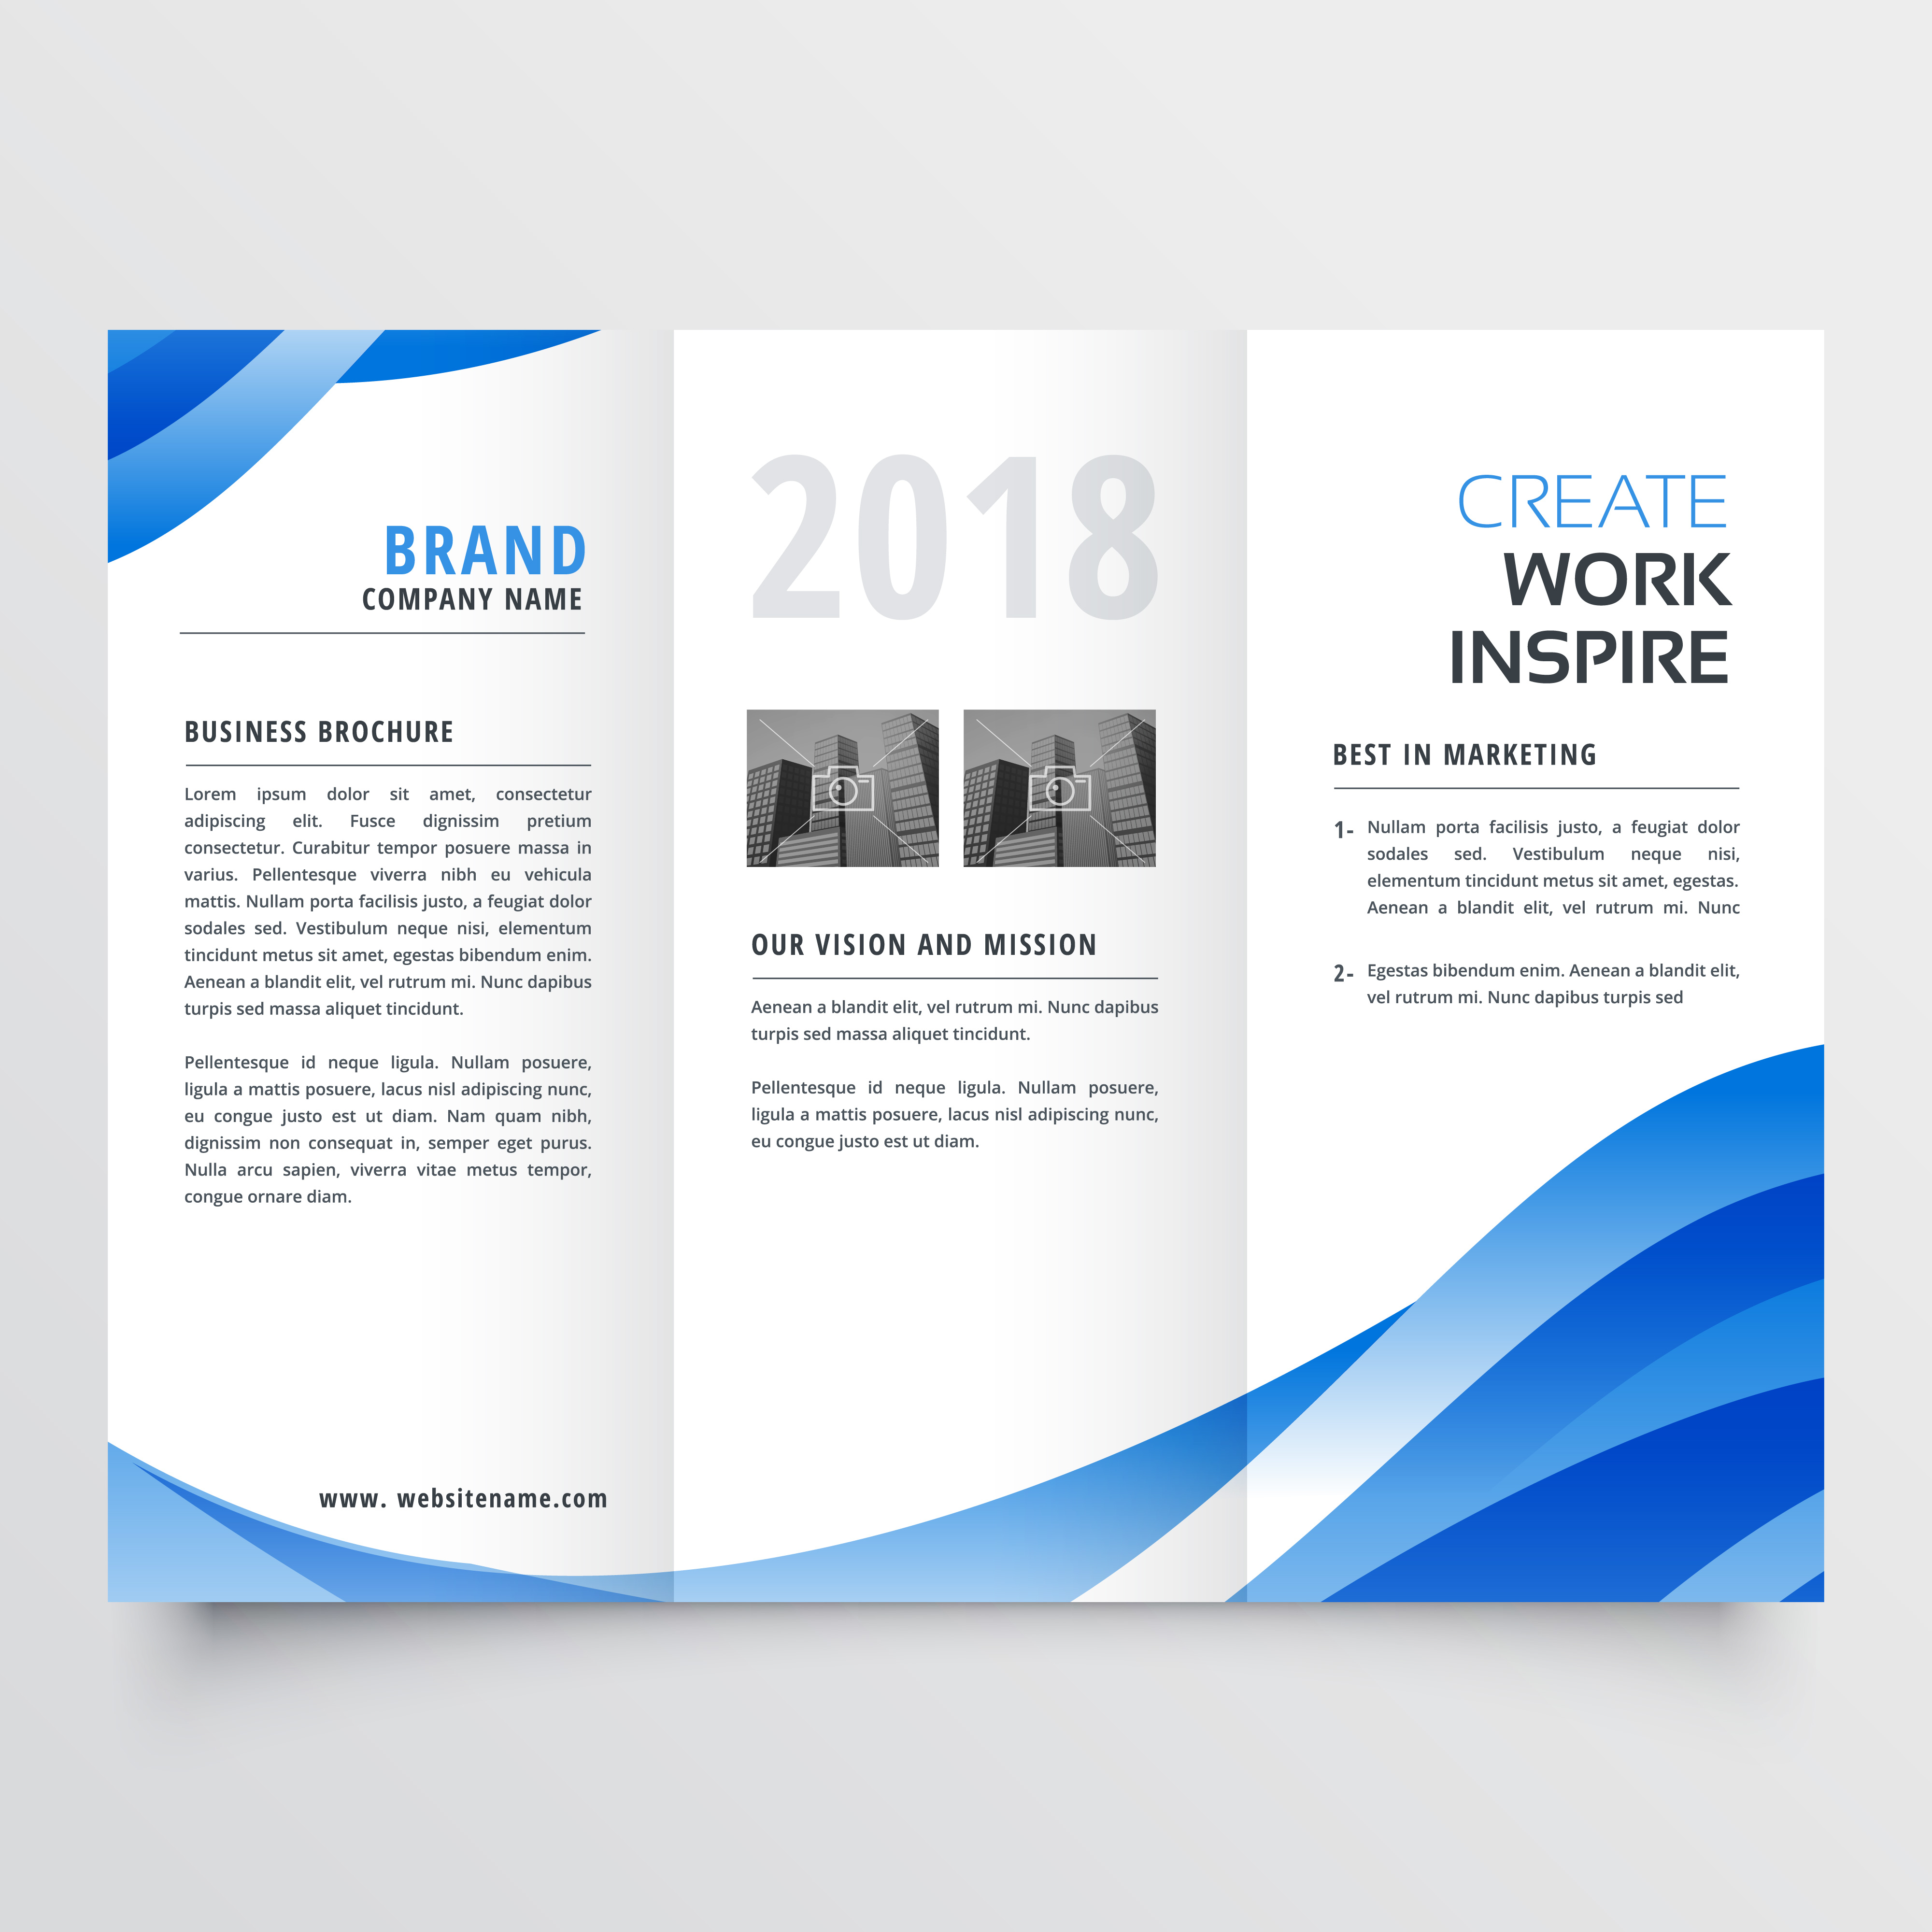 Templates For Brochures Free: Creative Tri-fold Brochure Design Template With Trendy